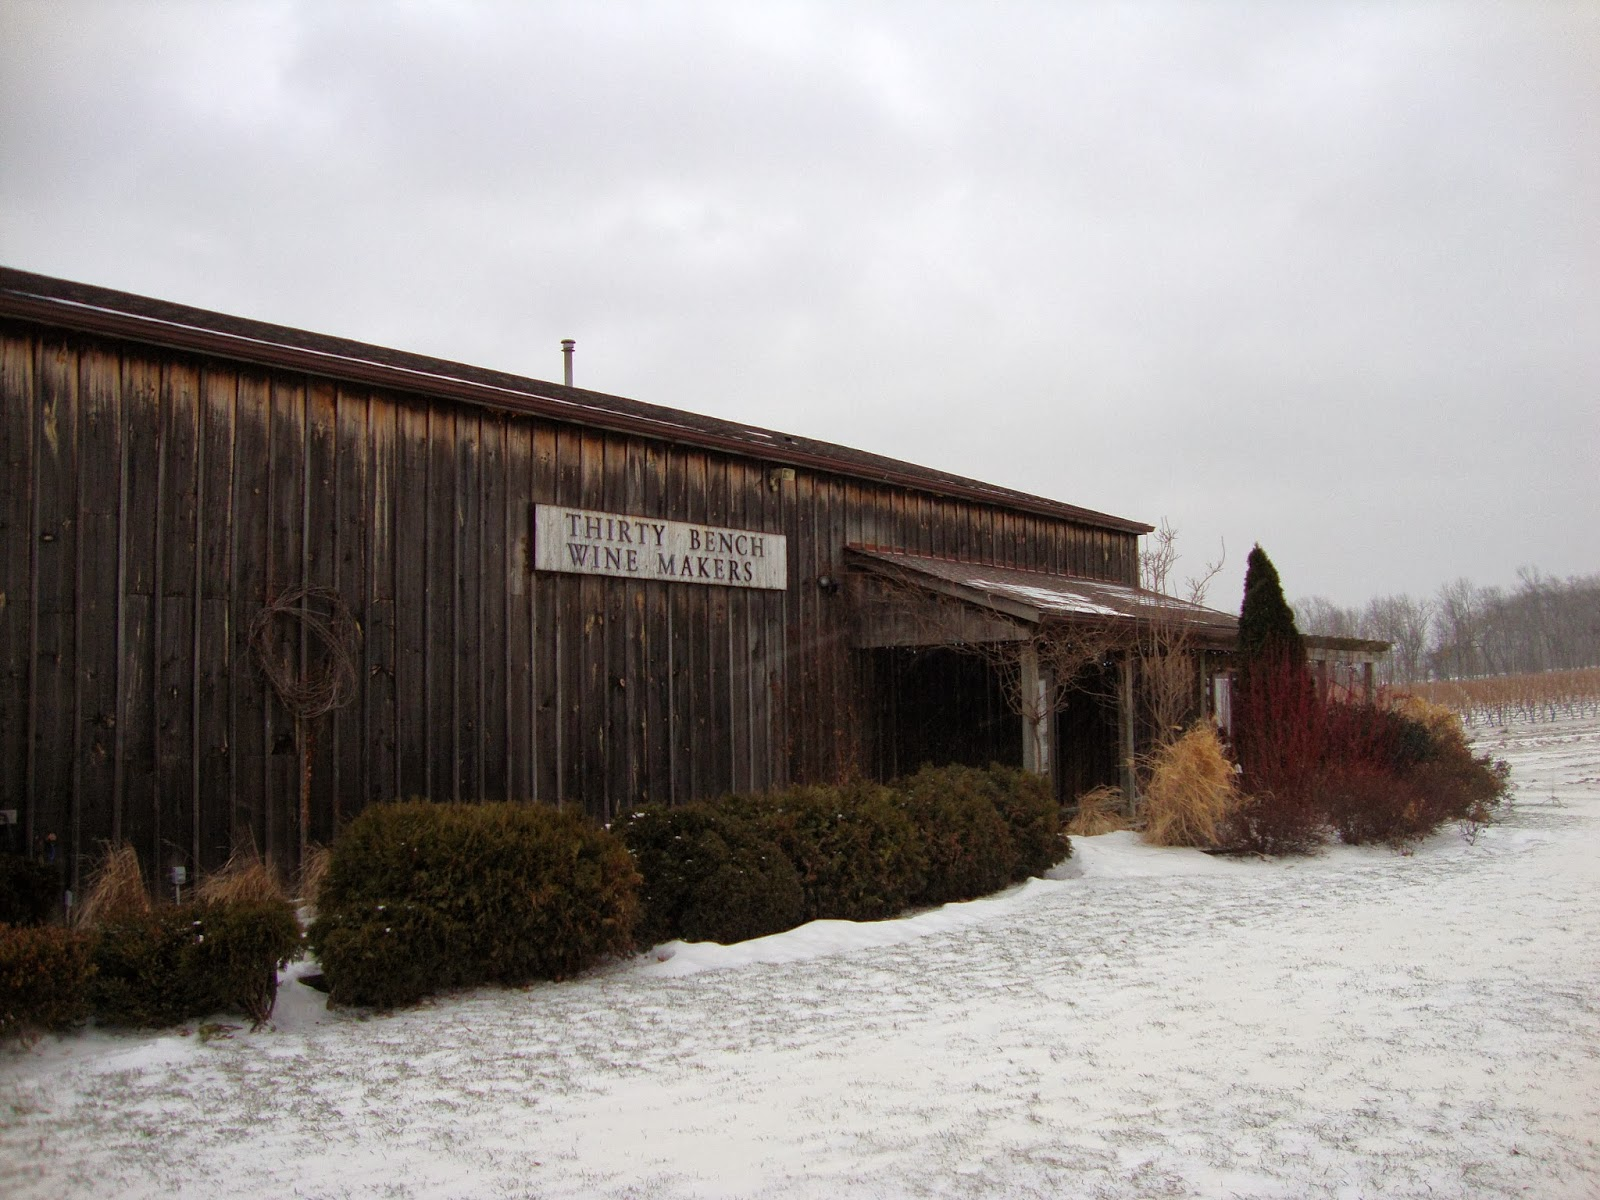 Thirty Bench Wine Makers, located in Beamsville Ontario